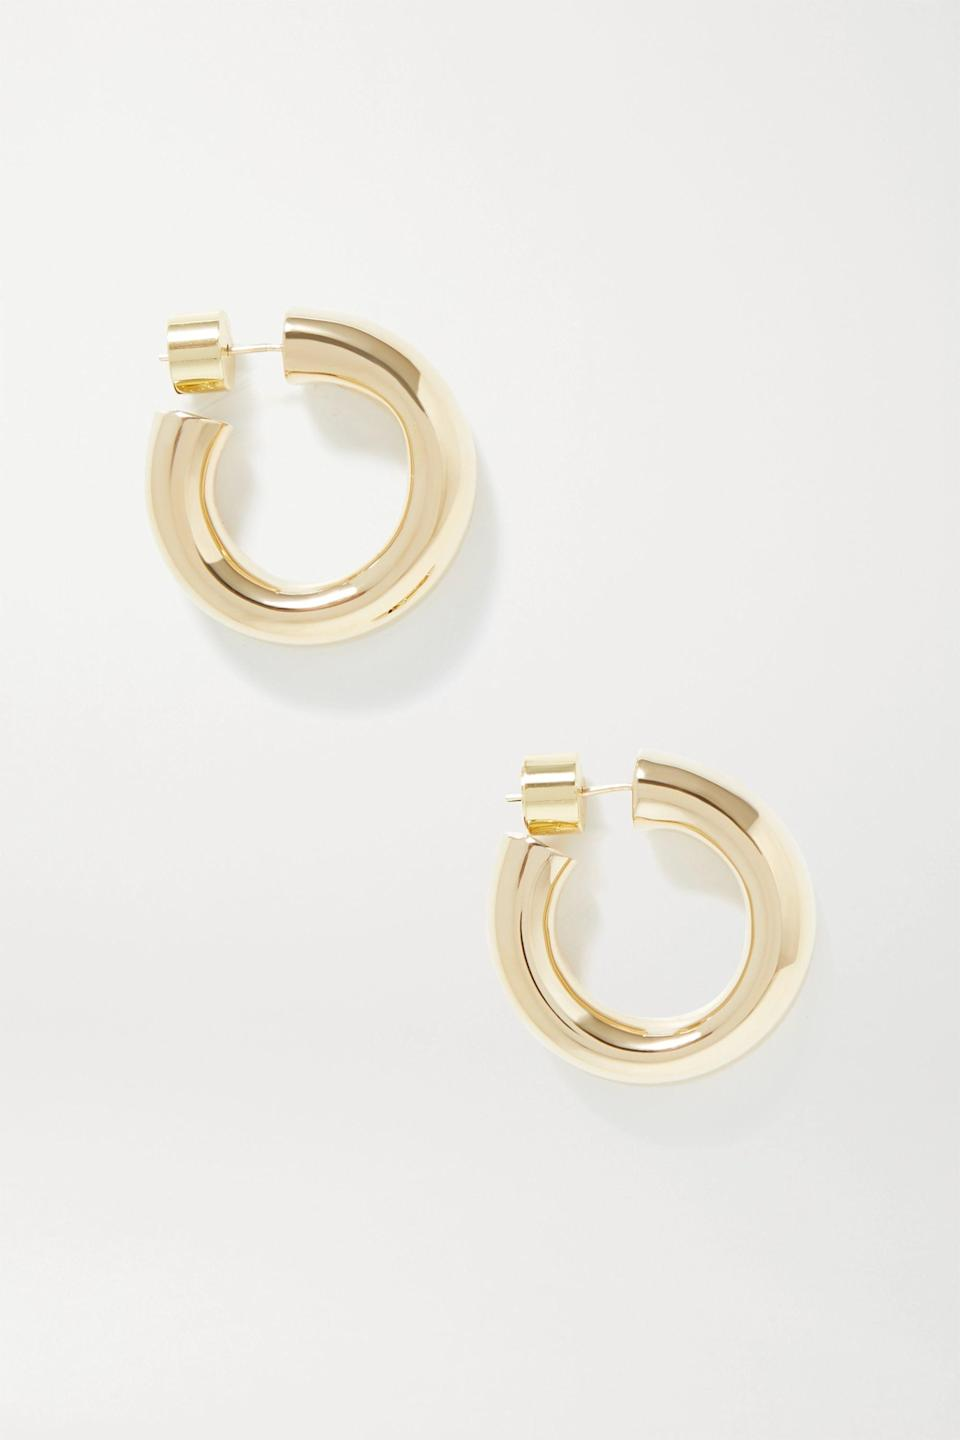 """<p><strong>Jennifer Fisher</strong></p><p>net-a-porter.com</p><p><strong>$285.00</strong></p><p><a href=""""https://go.redirectingat.com?id=74968X1596630&url=https%3A%2F%2Fwww.net-a-porter.com%2Fen-us%2Fshop%2Fproduct%2Fjennifer-fisher%2Fkevin-gold-plated-hoop-earrings%2F1280228&sref=https%3A%2F%2Fwww.redbookmag.com%2Ffashion%2Fg34824874%2Fbest-jewelry-gift-ideas%2F"""" rel=""""nofollow noopener"""" target=""""_blank"""" data-ylk=""""slk:Shop Now"""" class=""""link rapid-noclick-resp"""">Shop Now</a></p><p>Jennifer Fisher makes the absolute best hoop earrings. We particularly like a chunky gold style for holiday, but you can't go wrong with any of these hoops. </p><p>More: <a href=""""https://www.townandcountrymag.com/style/fashion-trends/g34286384/chunky-gold-jewelry/"""" rel=""""nofollow noopener"""" target=""""_blank"""" data-ylk=""""slk:10 Chunky Gold Jewelry Pieces to Wear Now"""" class=""""link rapid-noclick-resp"""">10 Chunky Gold Jewelry Pieces to Wear Now</a></p>"""